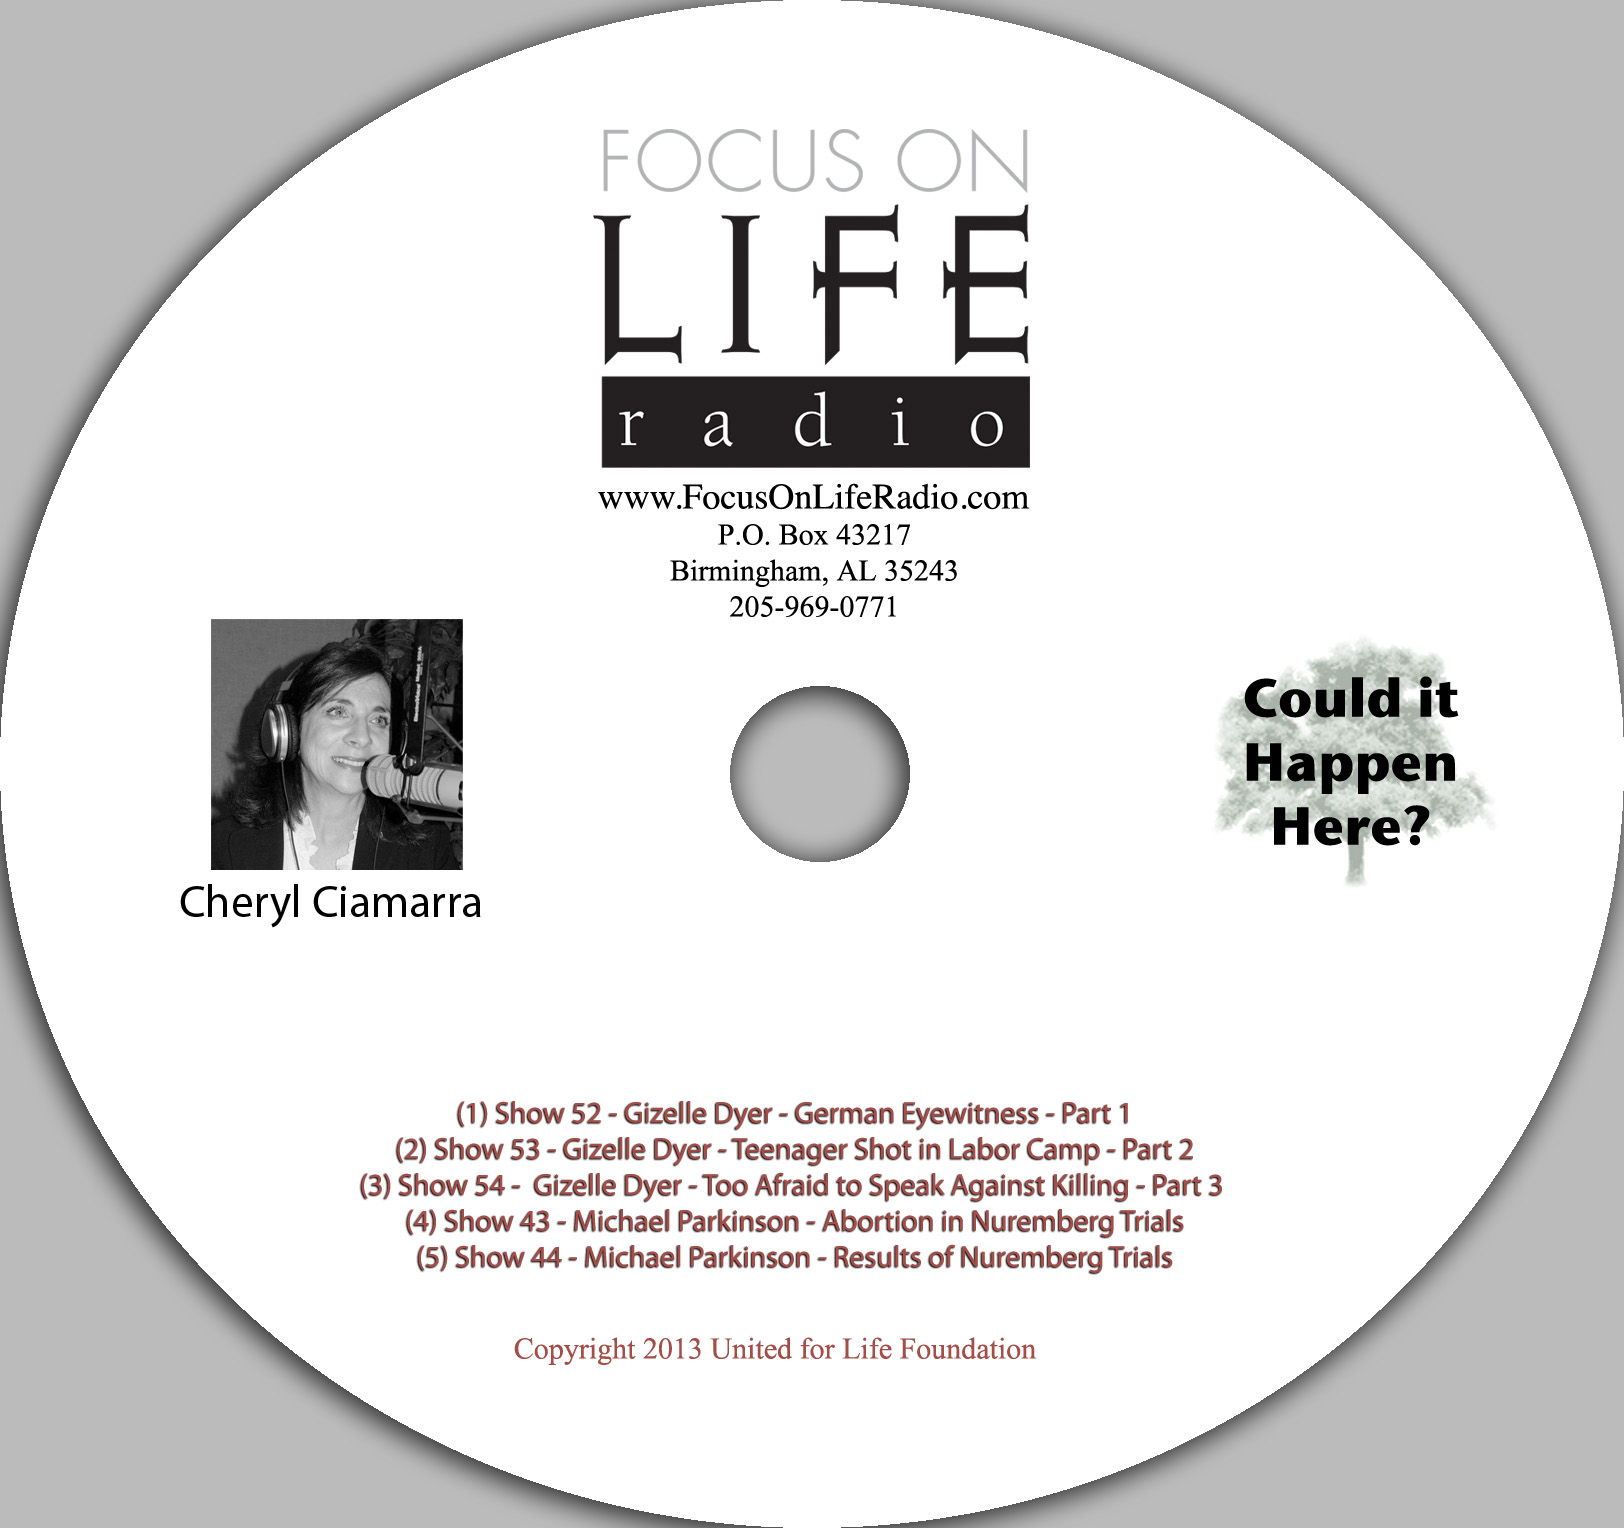 """Could it Happen Here"" Focus on Life Radio Series with Host Cheryl Ciamarra - Product Image"